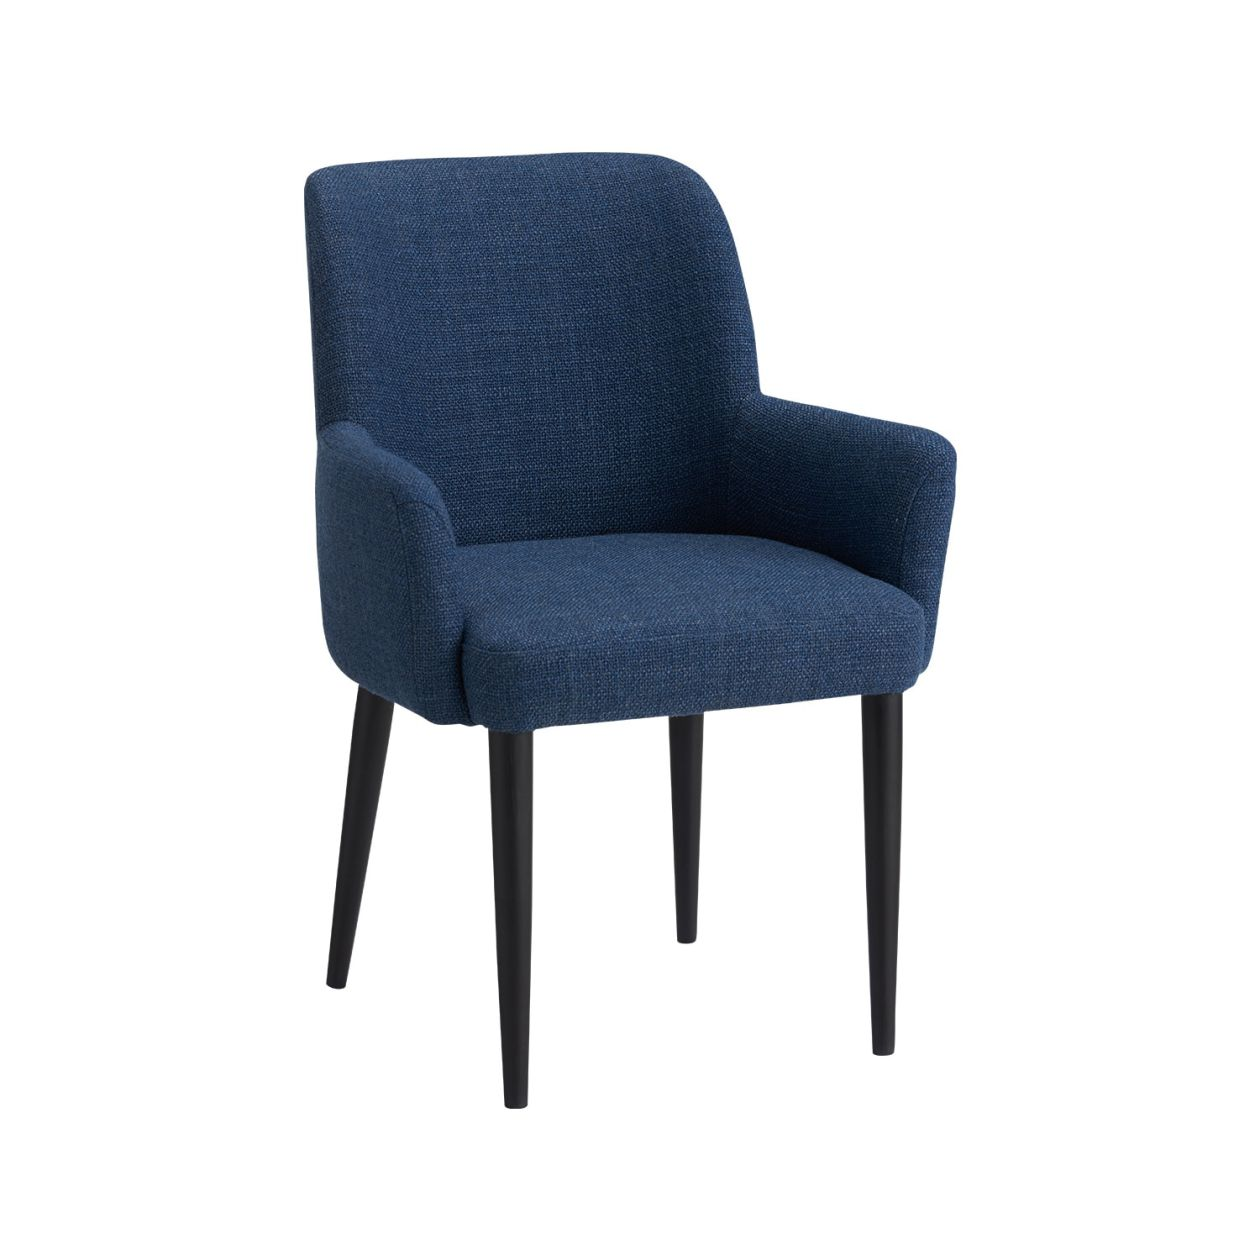 LIEVRE ARM CHAIR NAVY BK Legs